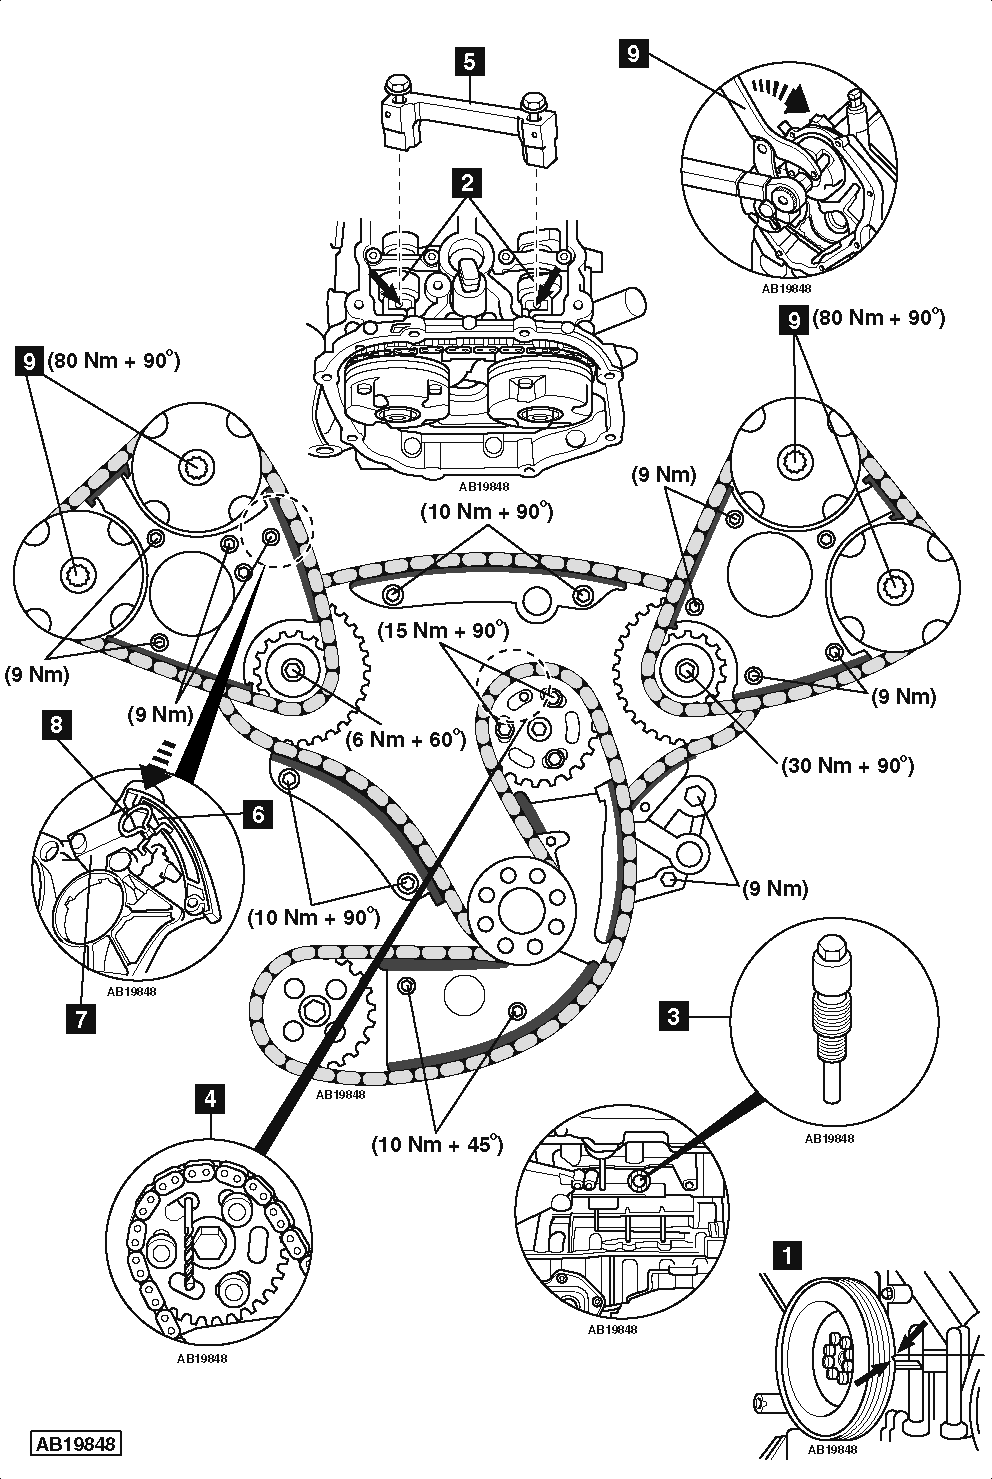 2004 Accord Wiring Diagram on honda accord coupe fuse box